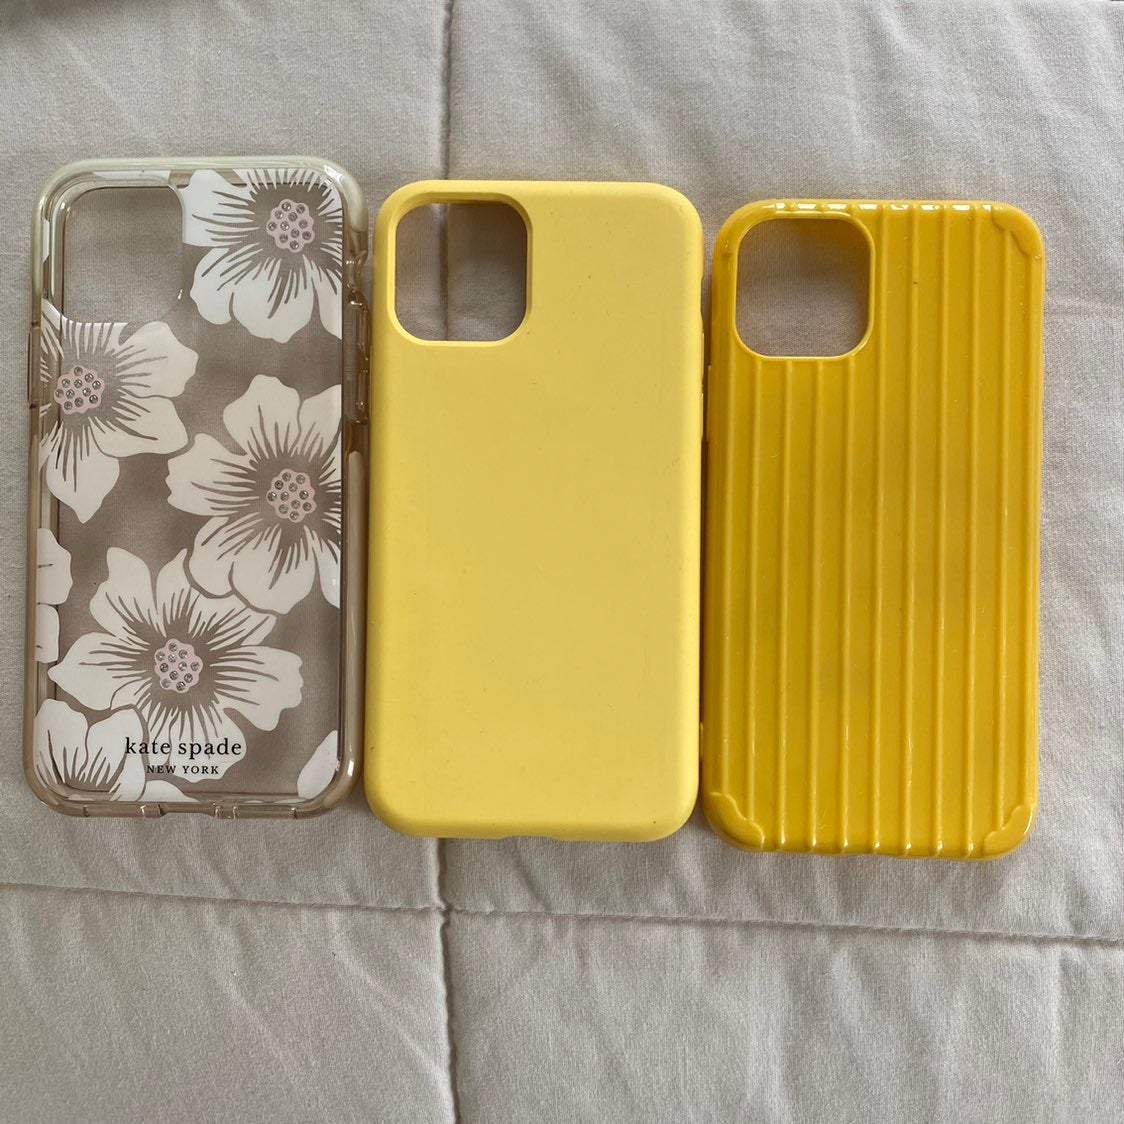 Kate spade and other iphone 11pro  case